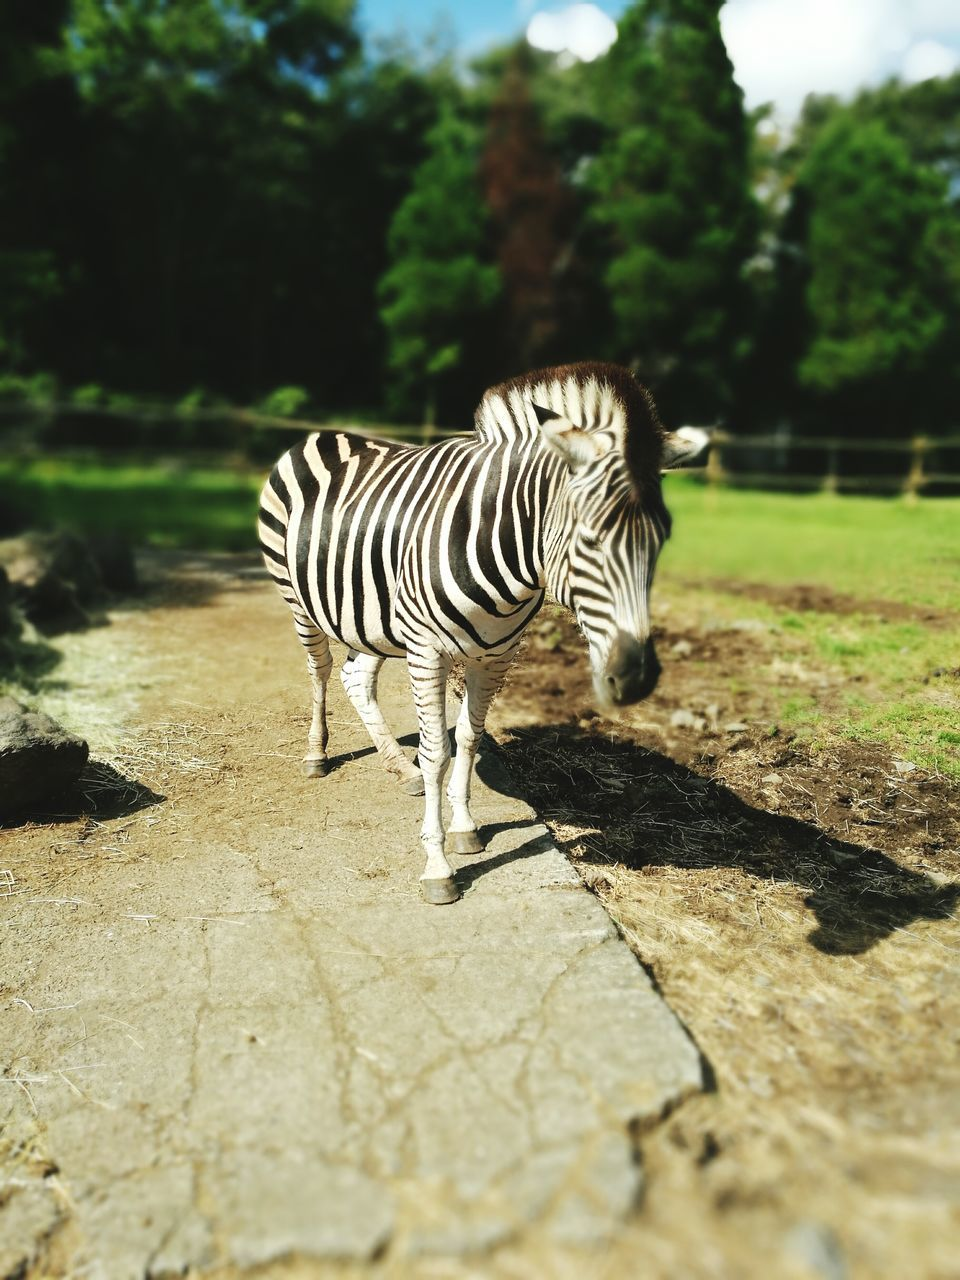 striped, animal themes, one animal, animals in the wild, animal wildlife, day, mammal, full length, outdoors, zebra, nature, shadow, animal markings, sunlight, no people, standing, tree, close-up